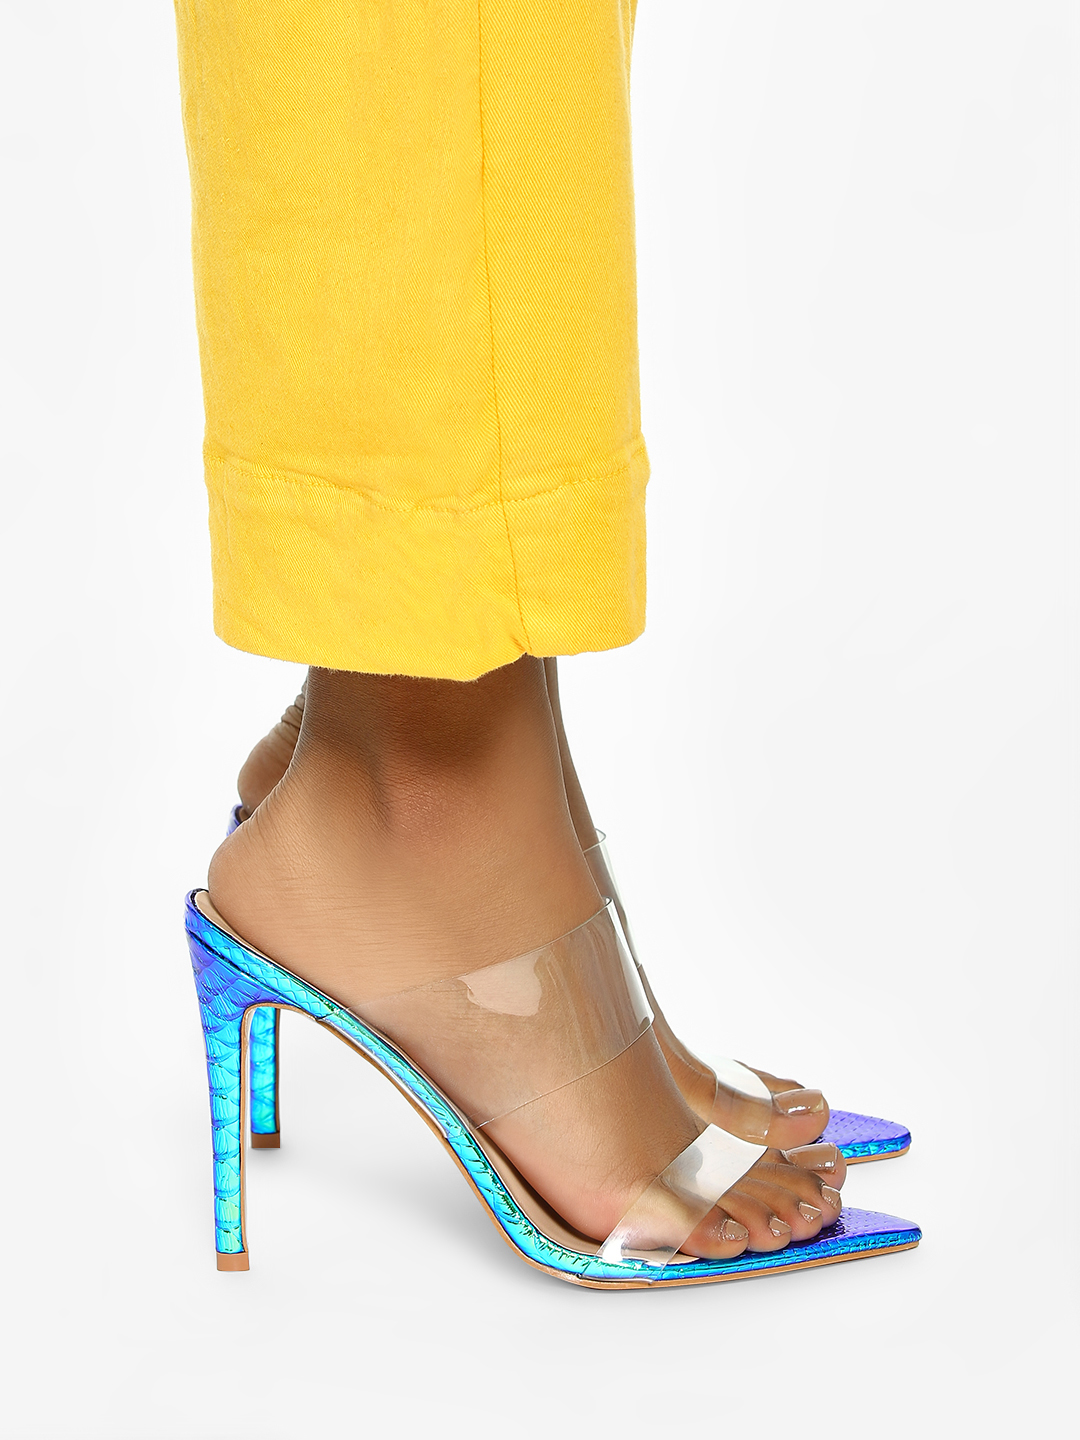 Intoto Blue Snakeskin Holographic Clear Heeled Sandals 1